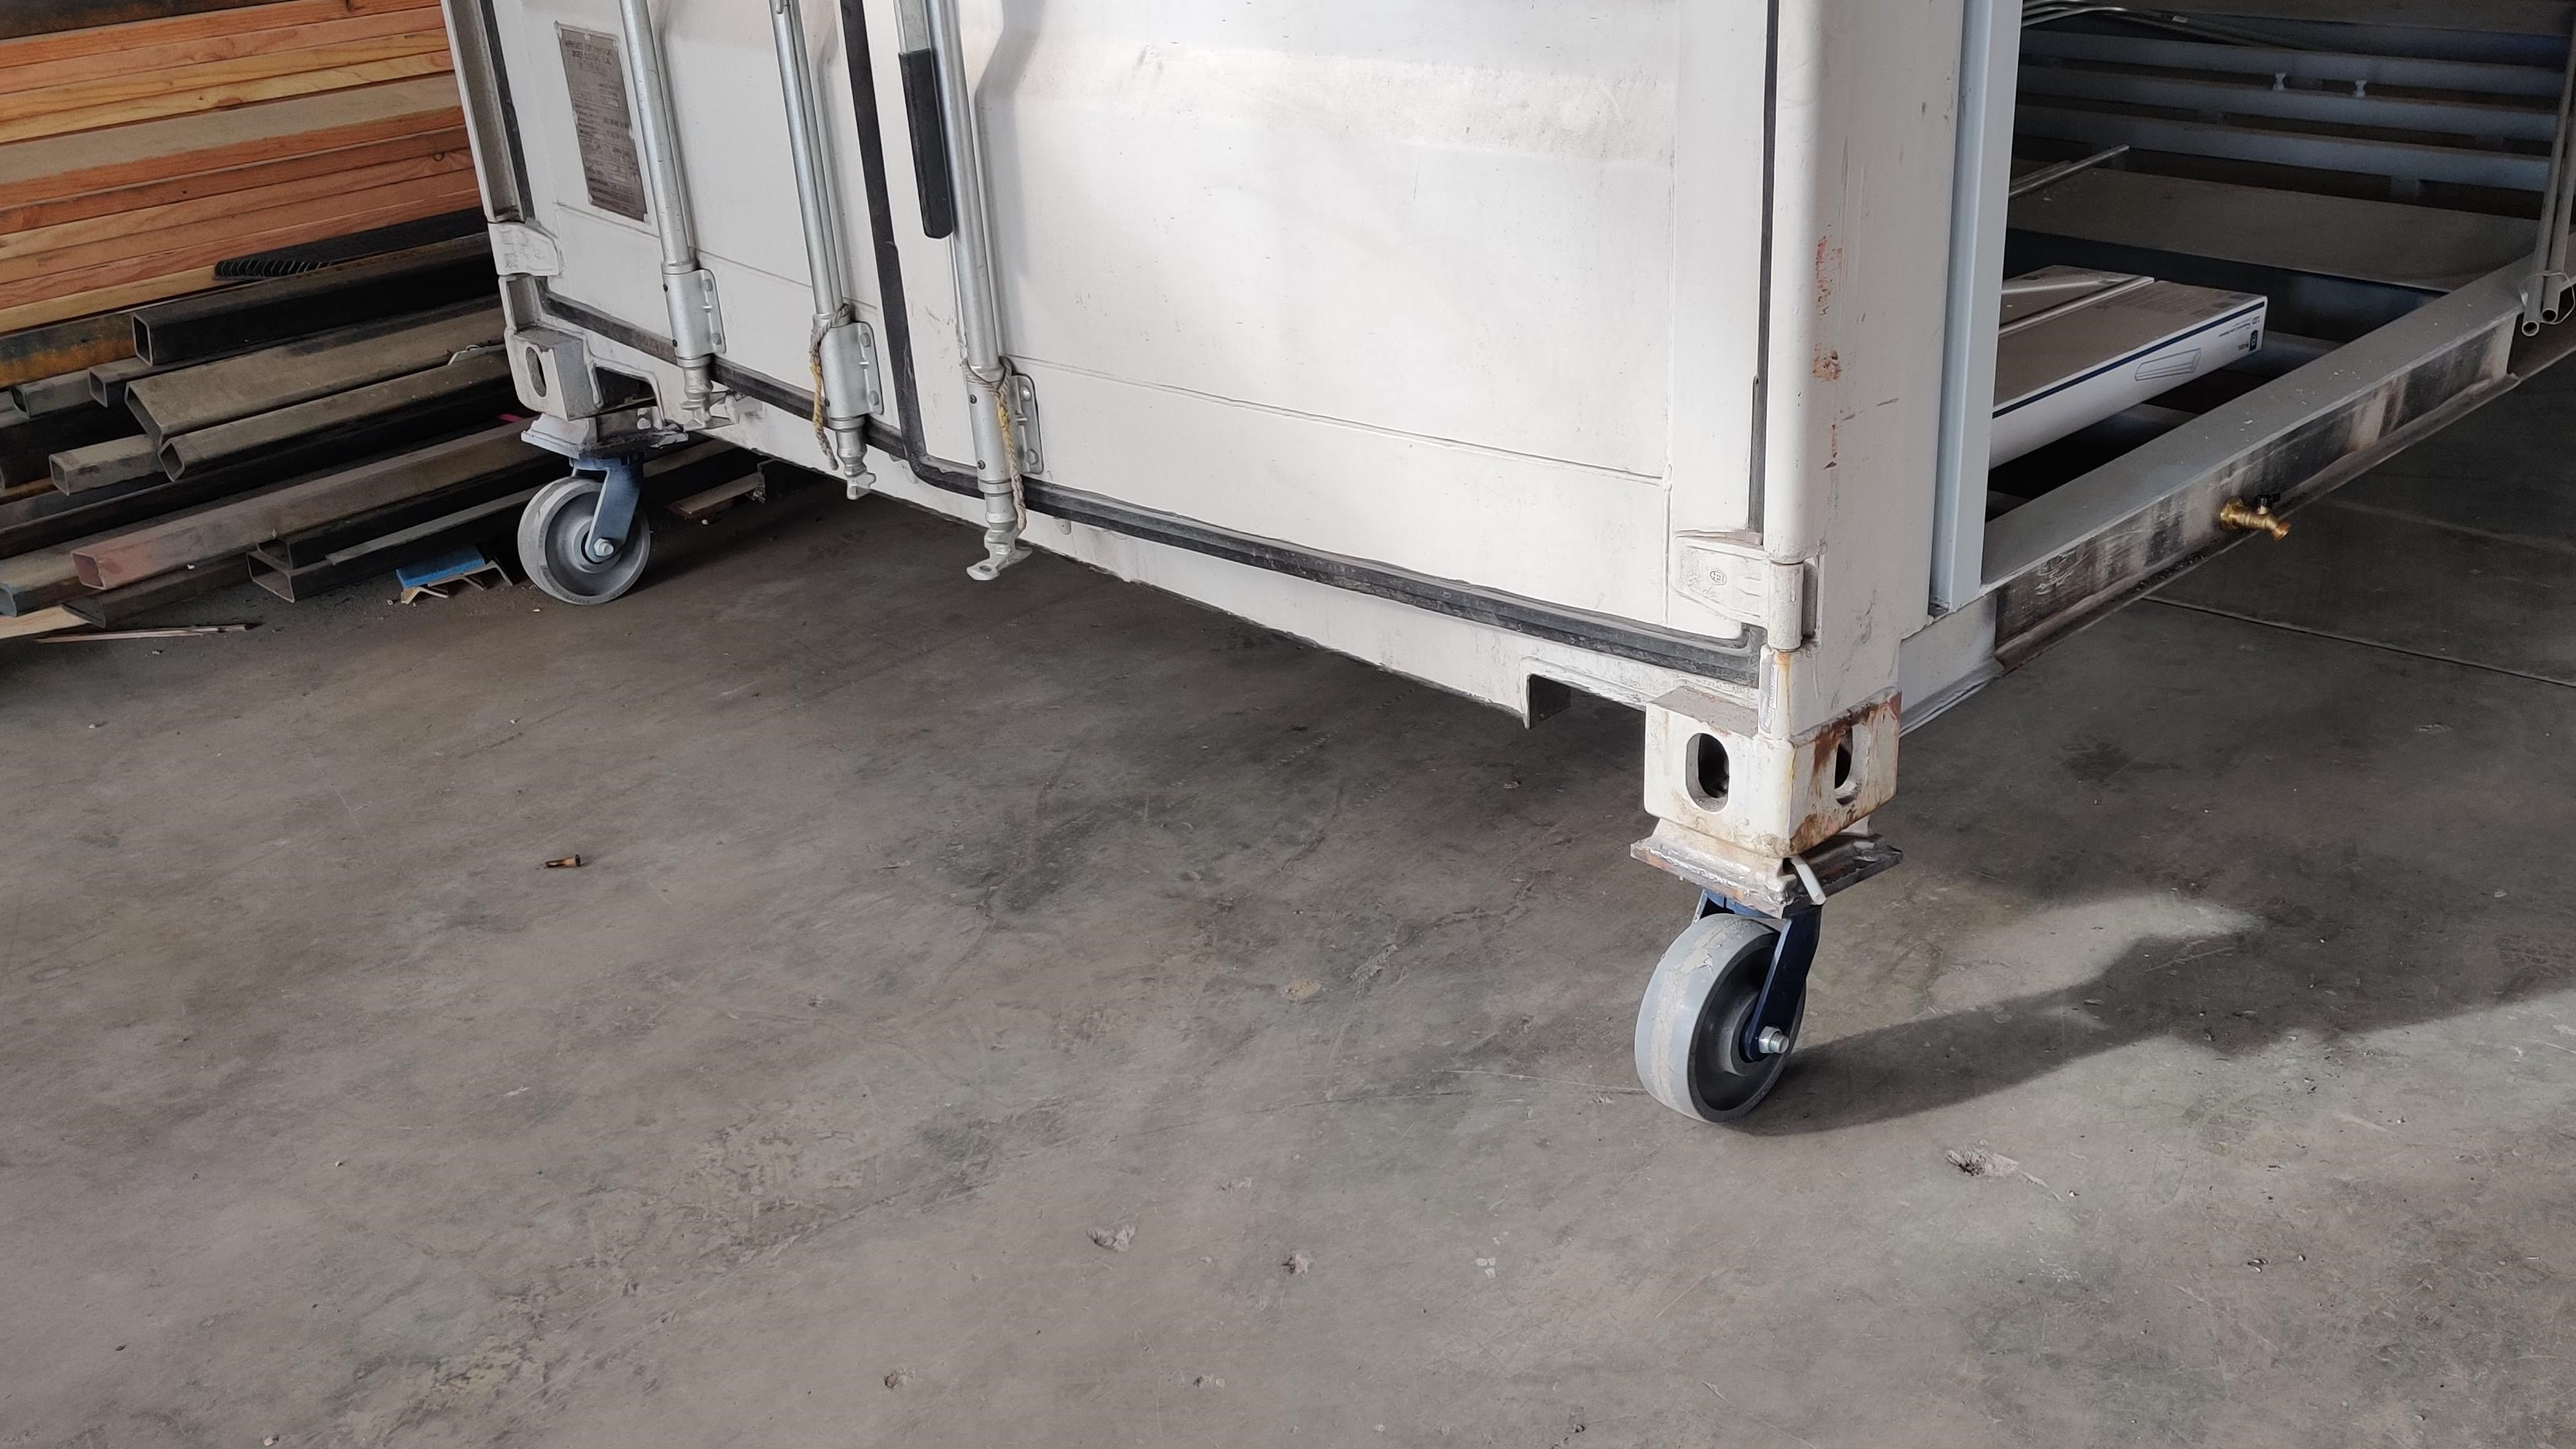 Shipping container caster wheels